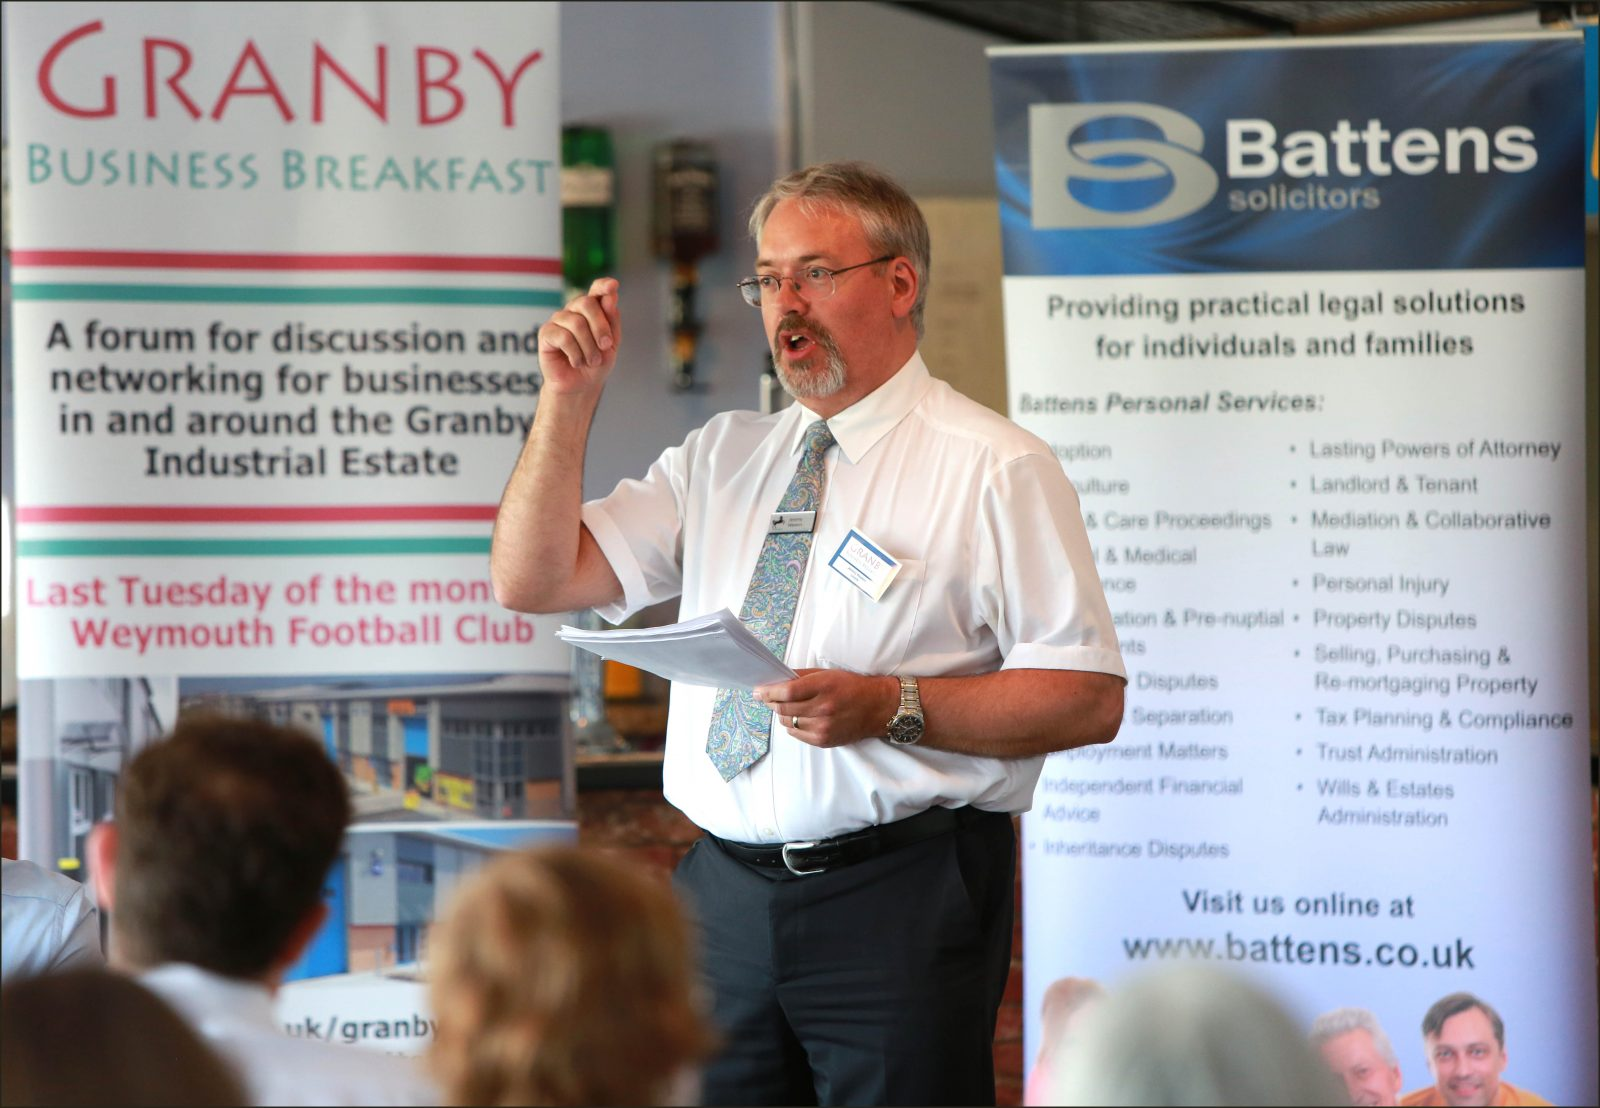 Guest speaker Jeremy Weekes of Lloyds Bank during the Granby Business Breakfast at Weymouth Football Club.